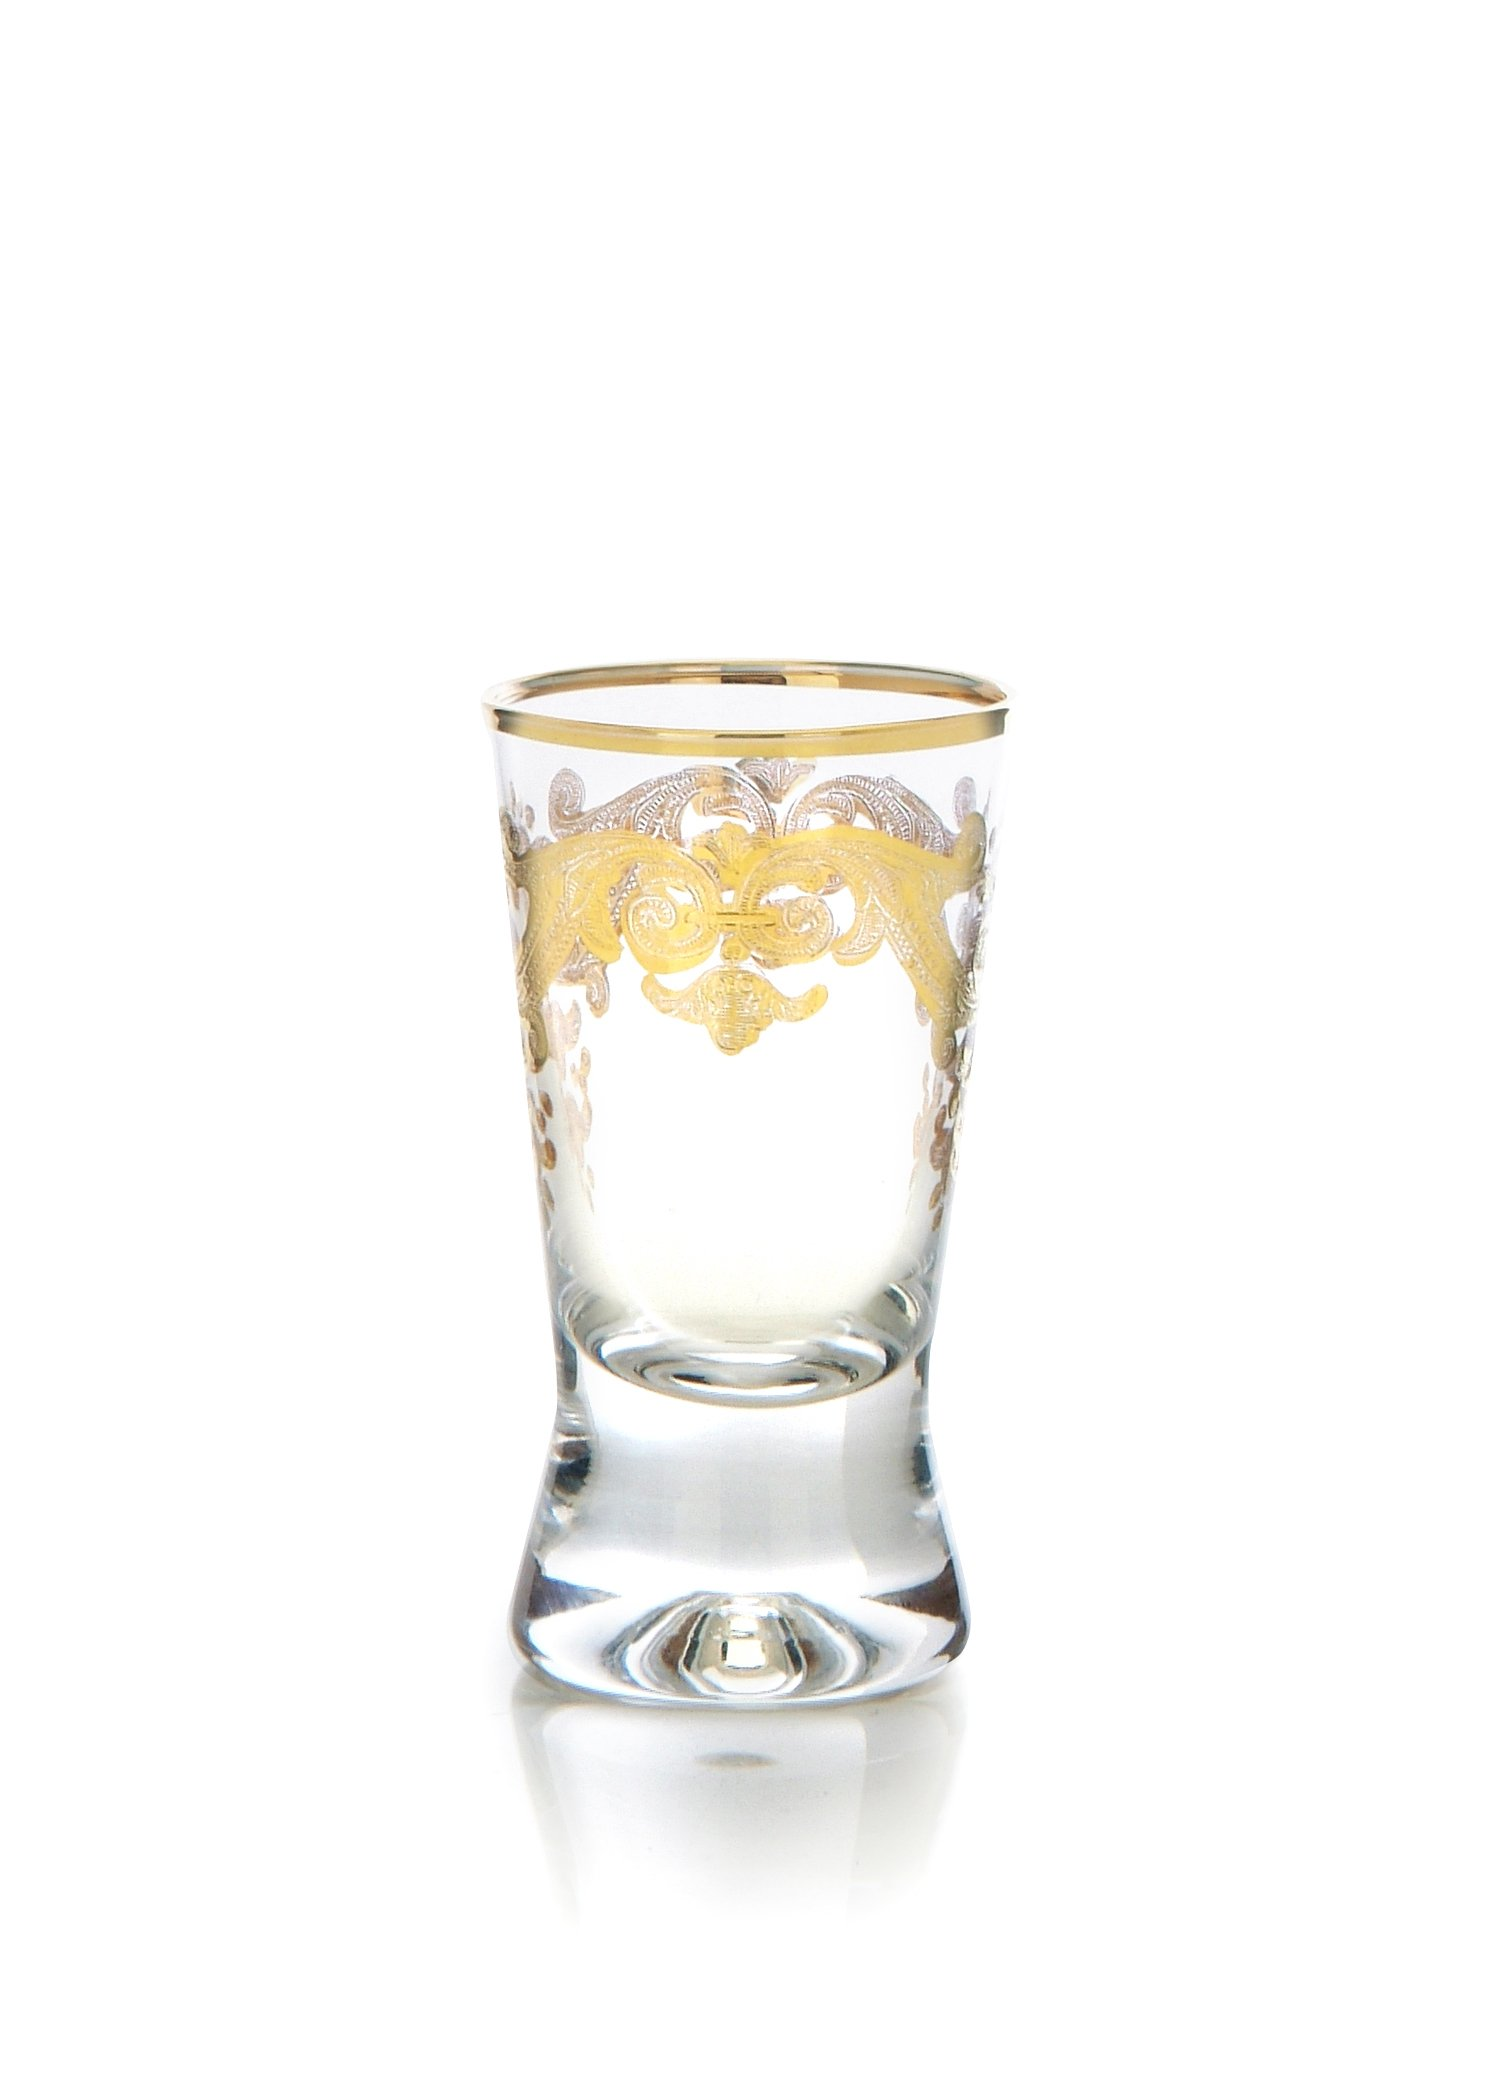 Classic Touch CLGG610 Liqueur Glasses with 24K Gold Artwork, Set of 6 by Classic Touch Inc.